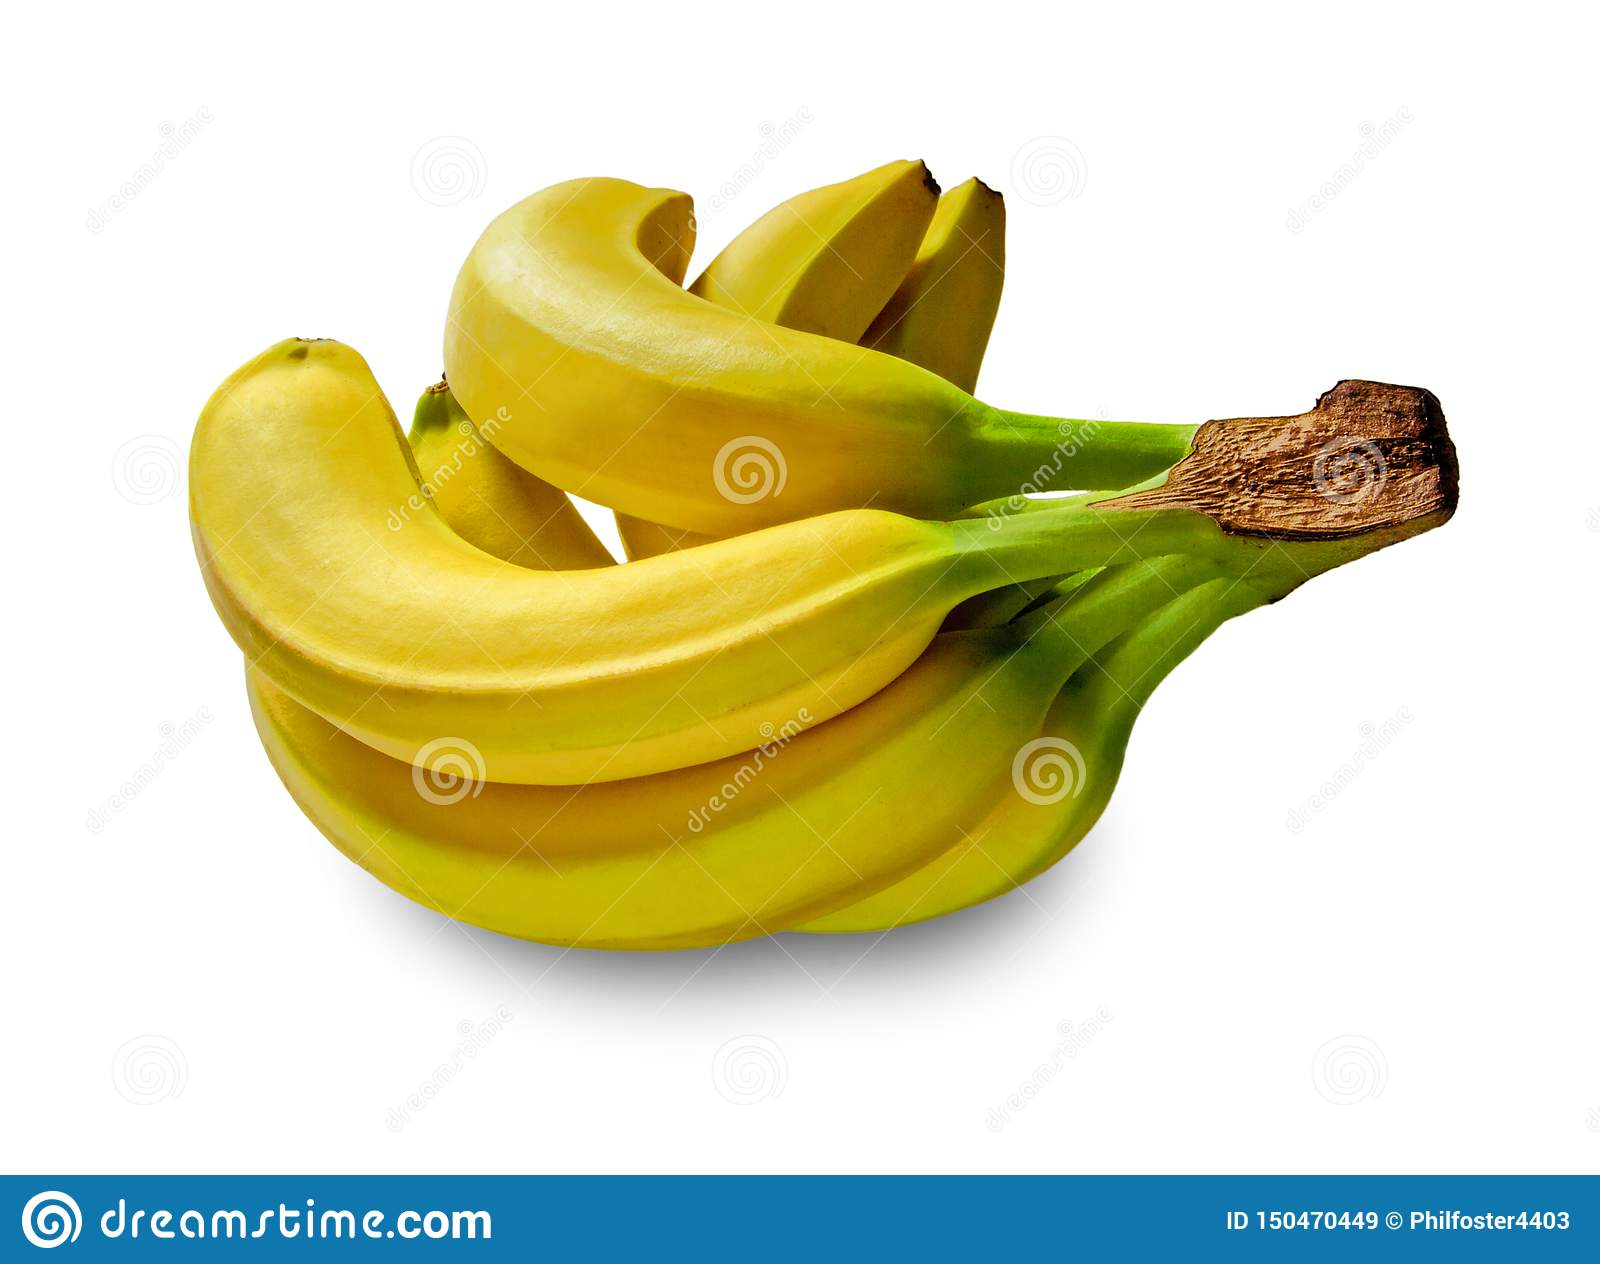 Bananas no estúdio